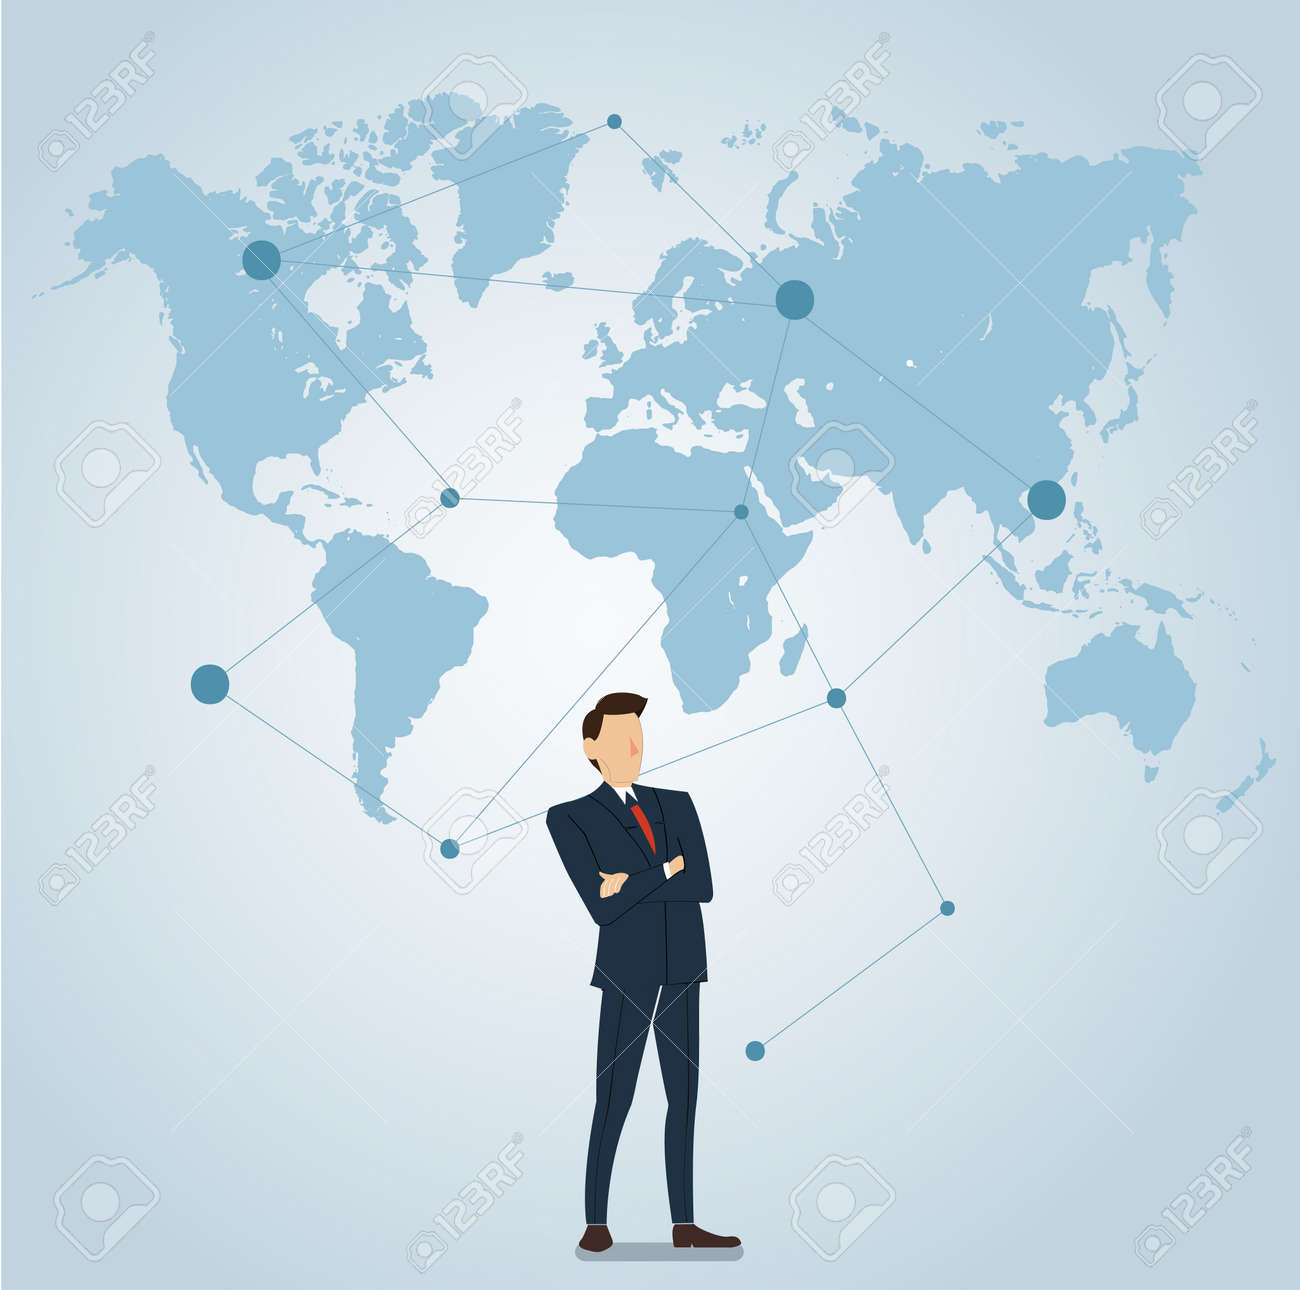 businessman with pin locations icon and map royalty free cliparts